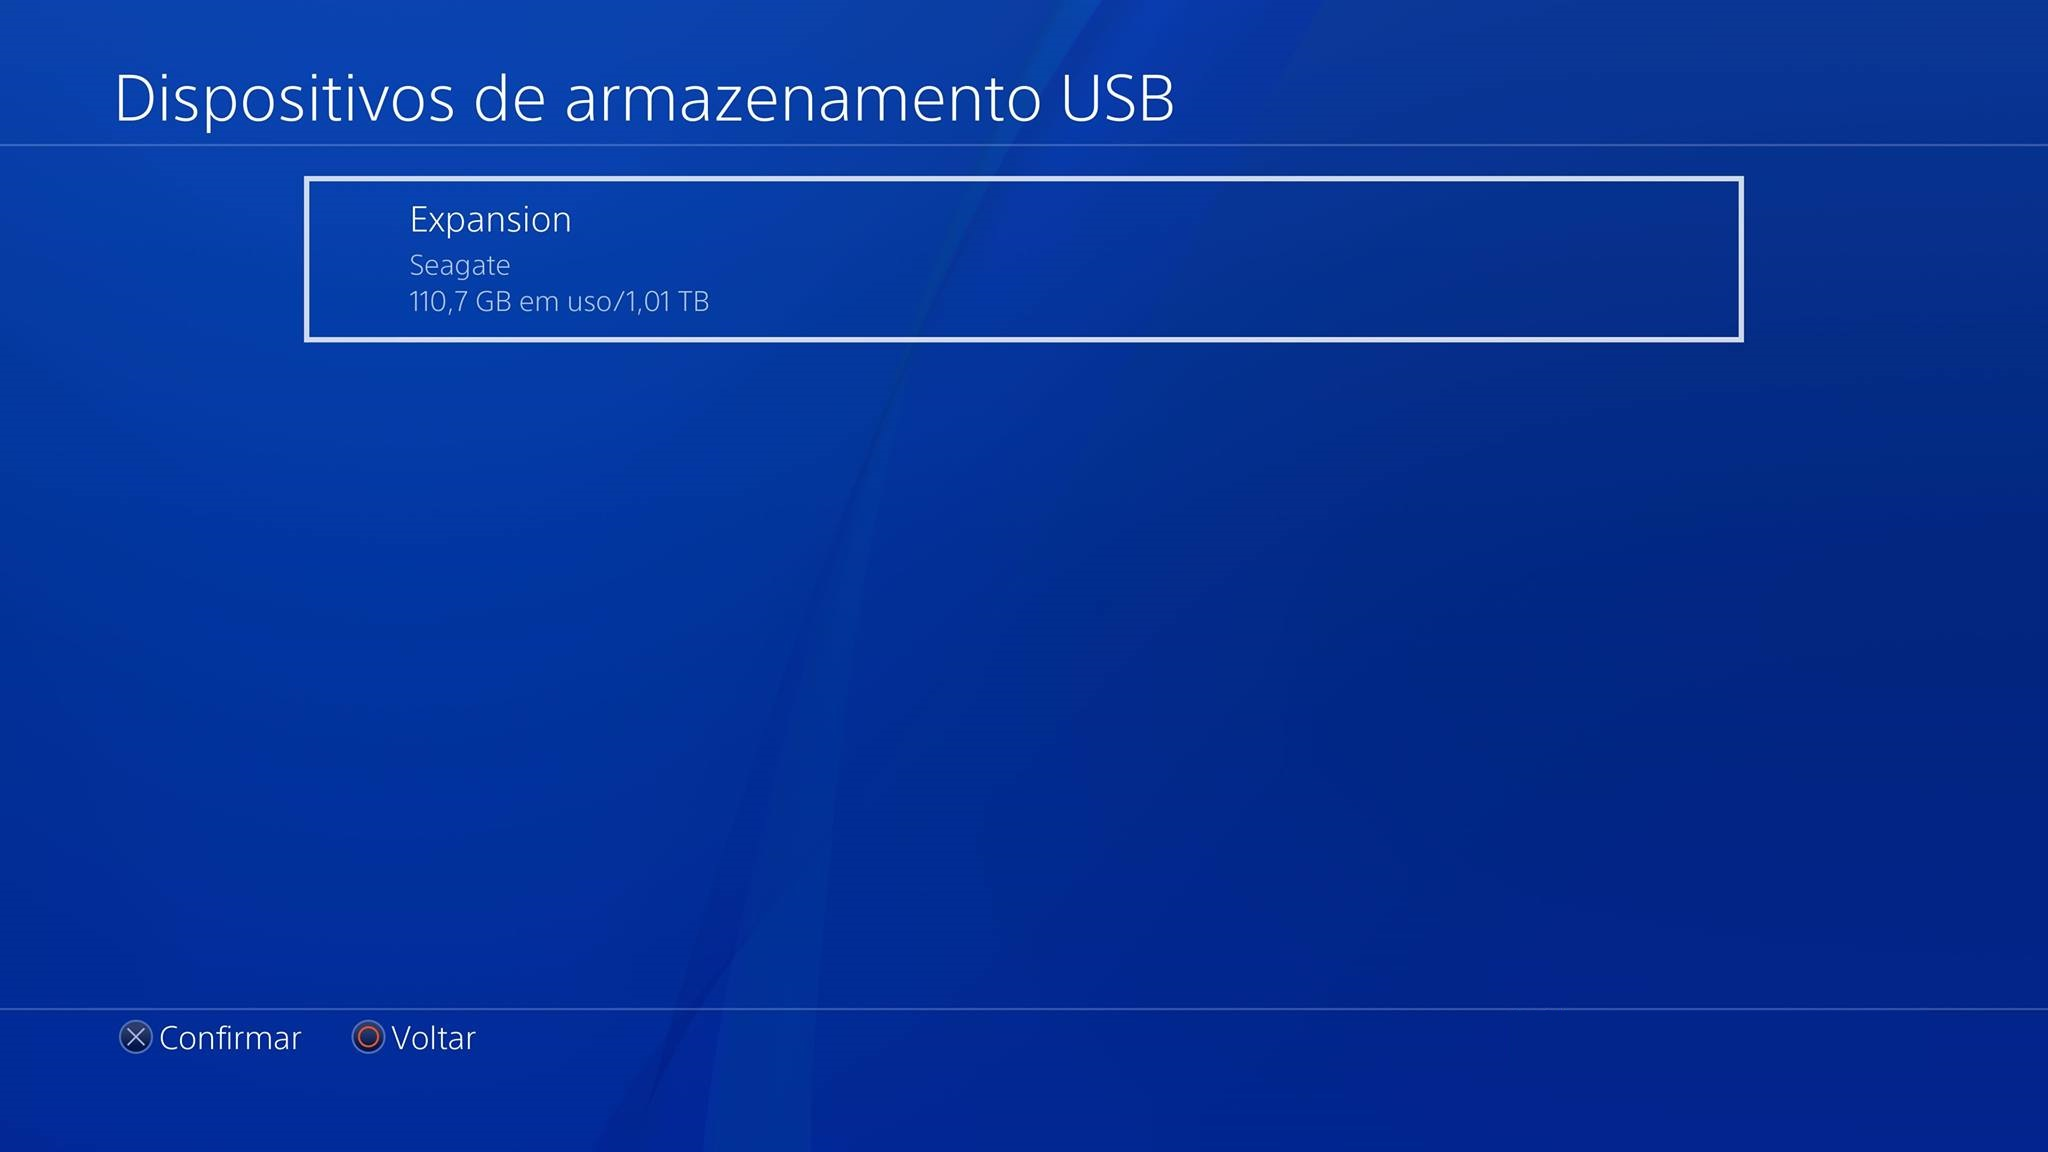 Configurando-HD-externo-no-PS4-3-1.jpg